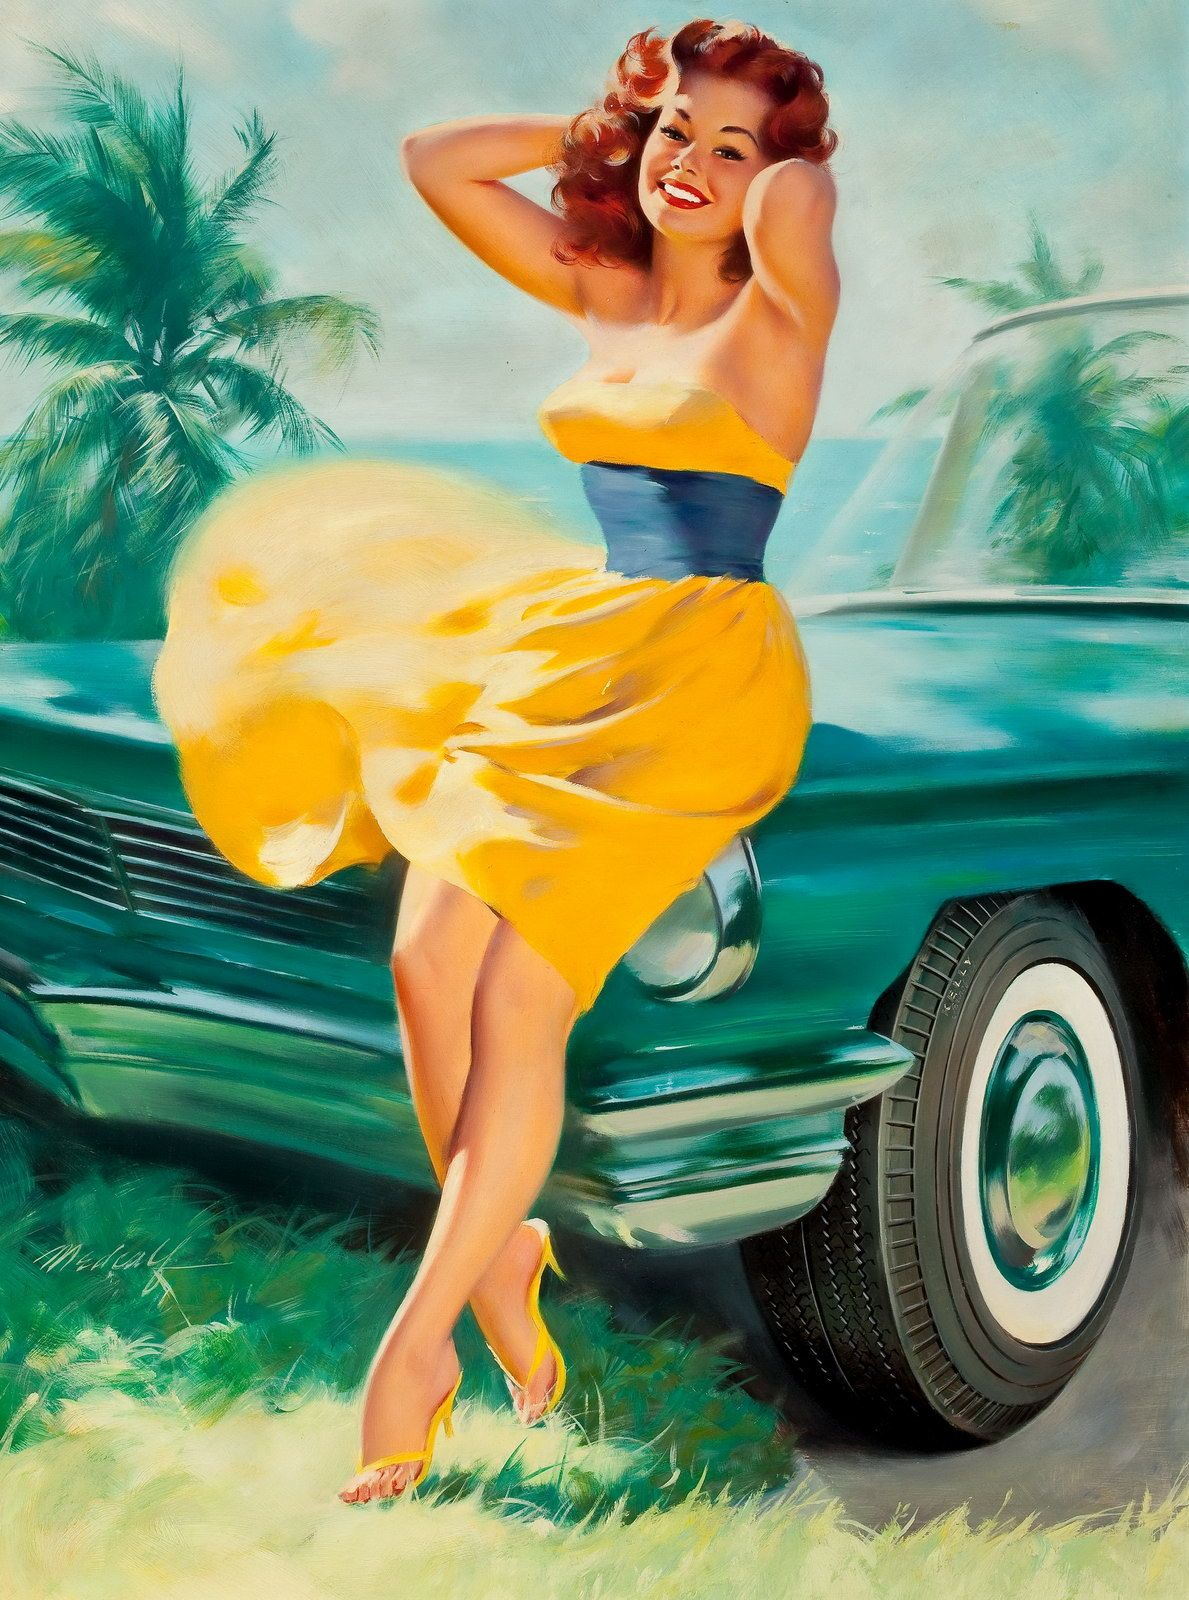 Redheaded Pinup Girl With Car Tattoo Ideas Inspiration